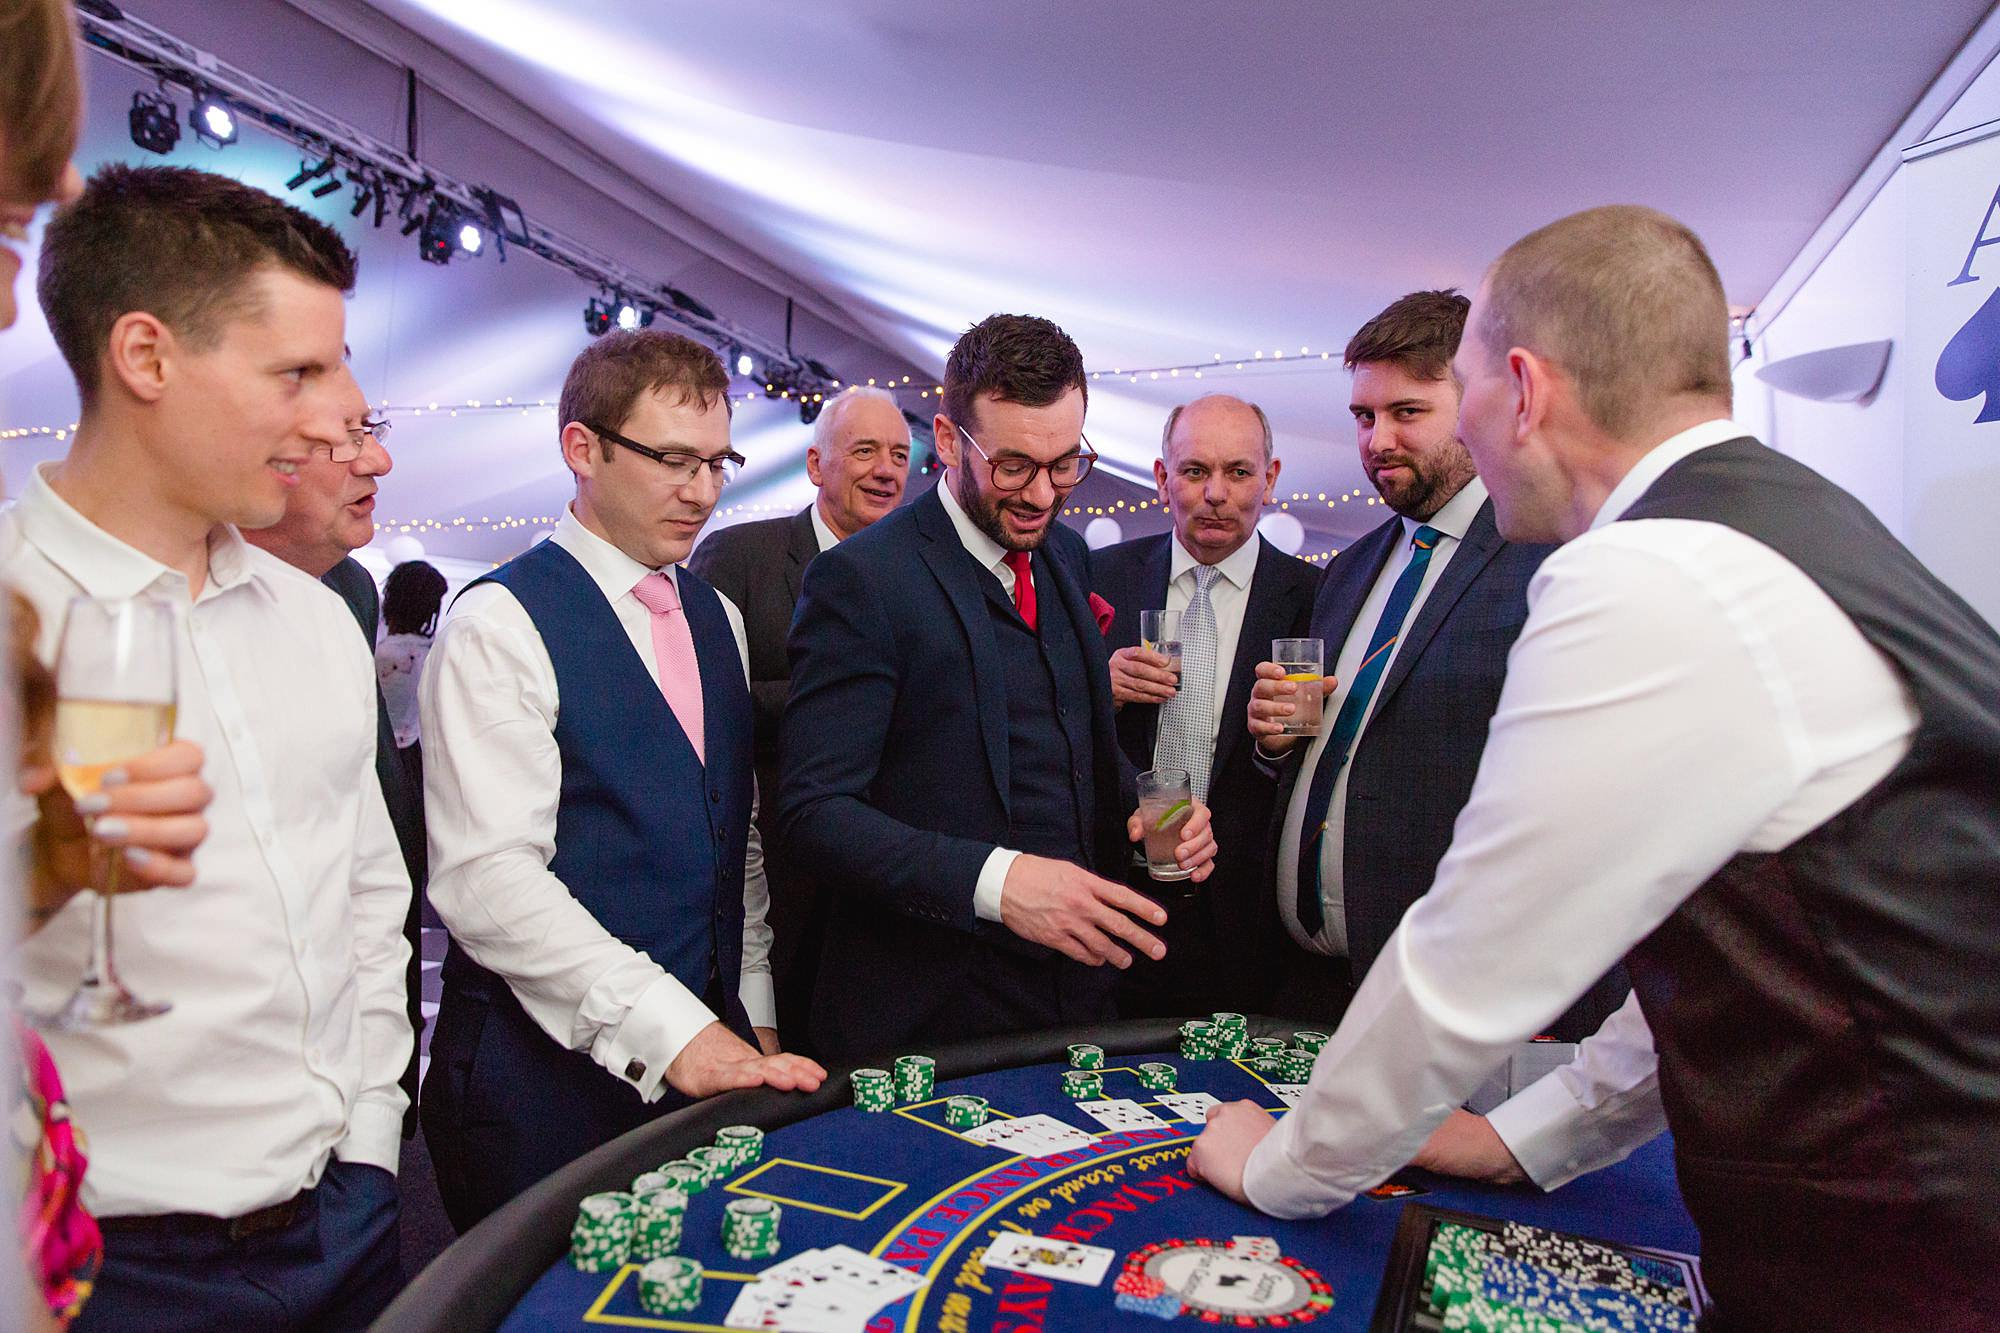 Bank of England Sports Centre wedding guests at blackjack table